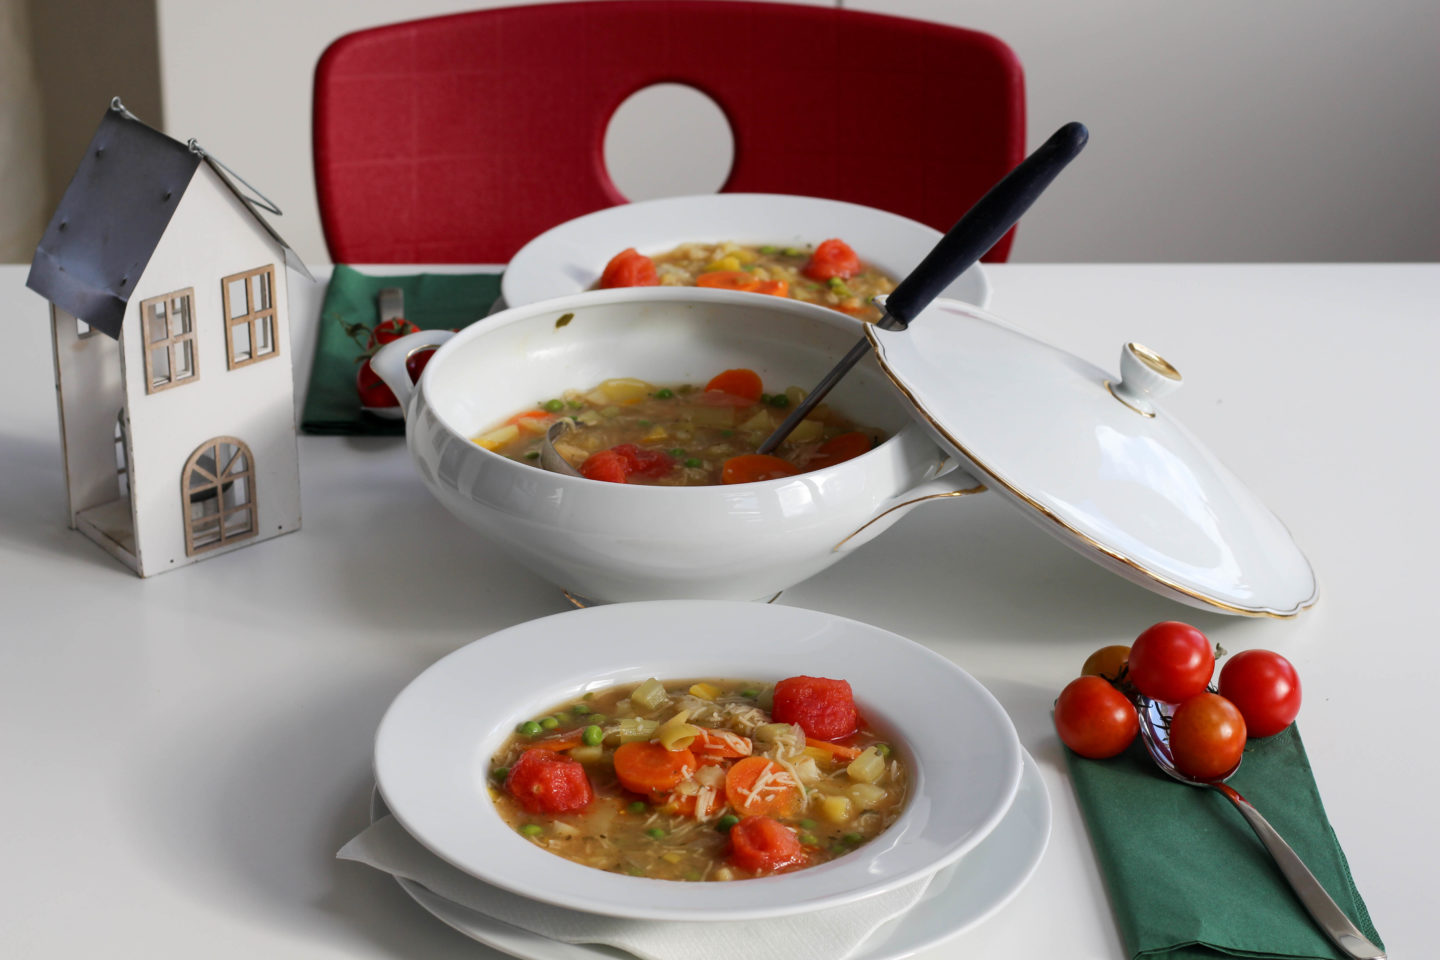 vegan-minestrone-suppe-gemuese-italien-homespa-plantbased - Homespa